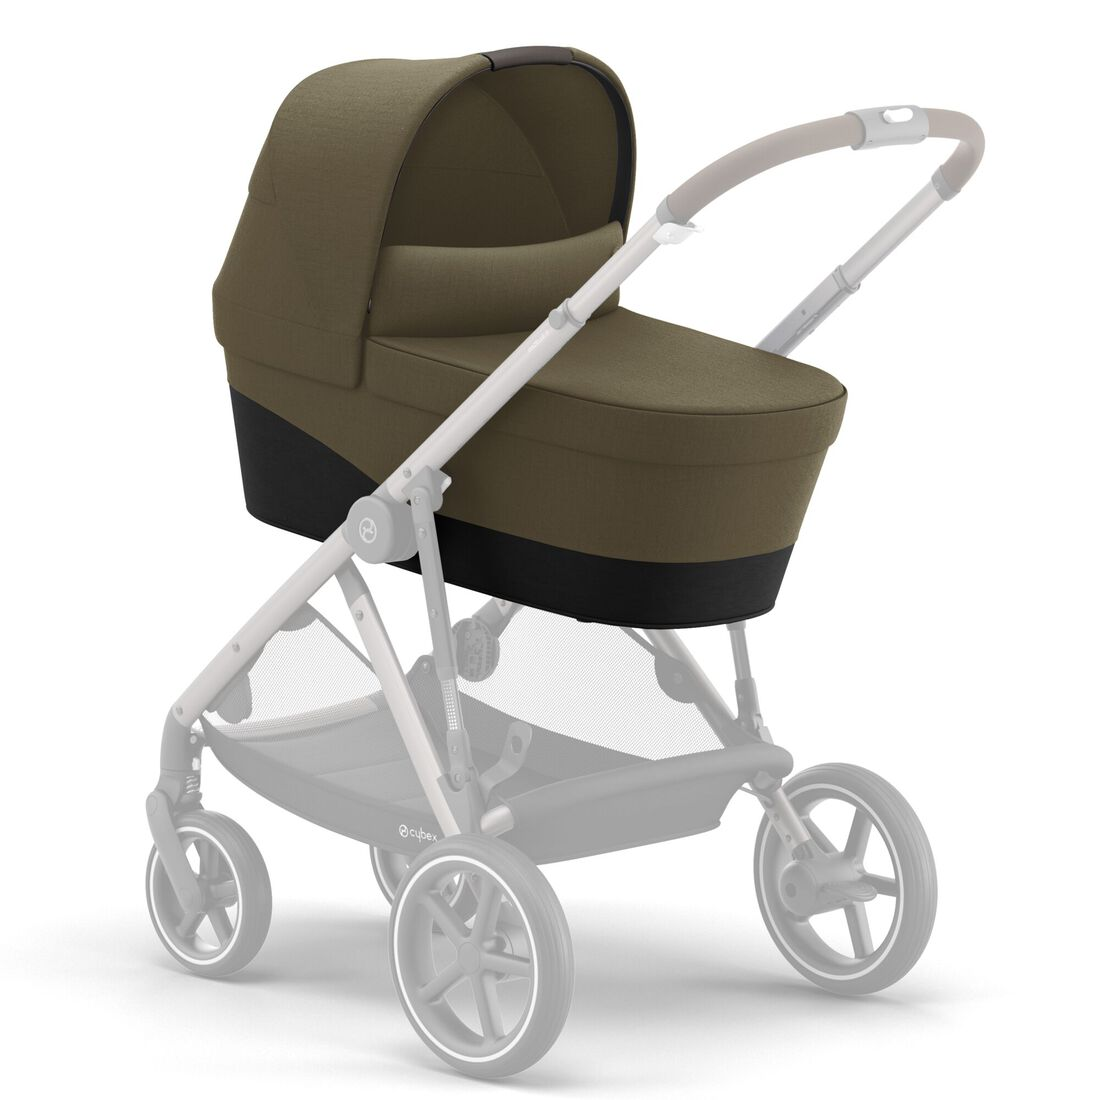 CYBEX Gazelle S Cot - Classic Beige in Classic Beige large image number 5